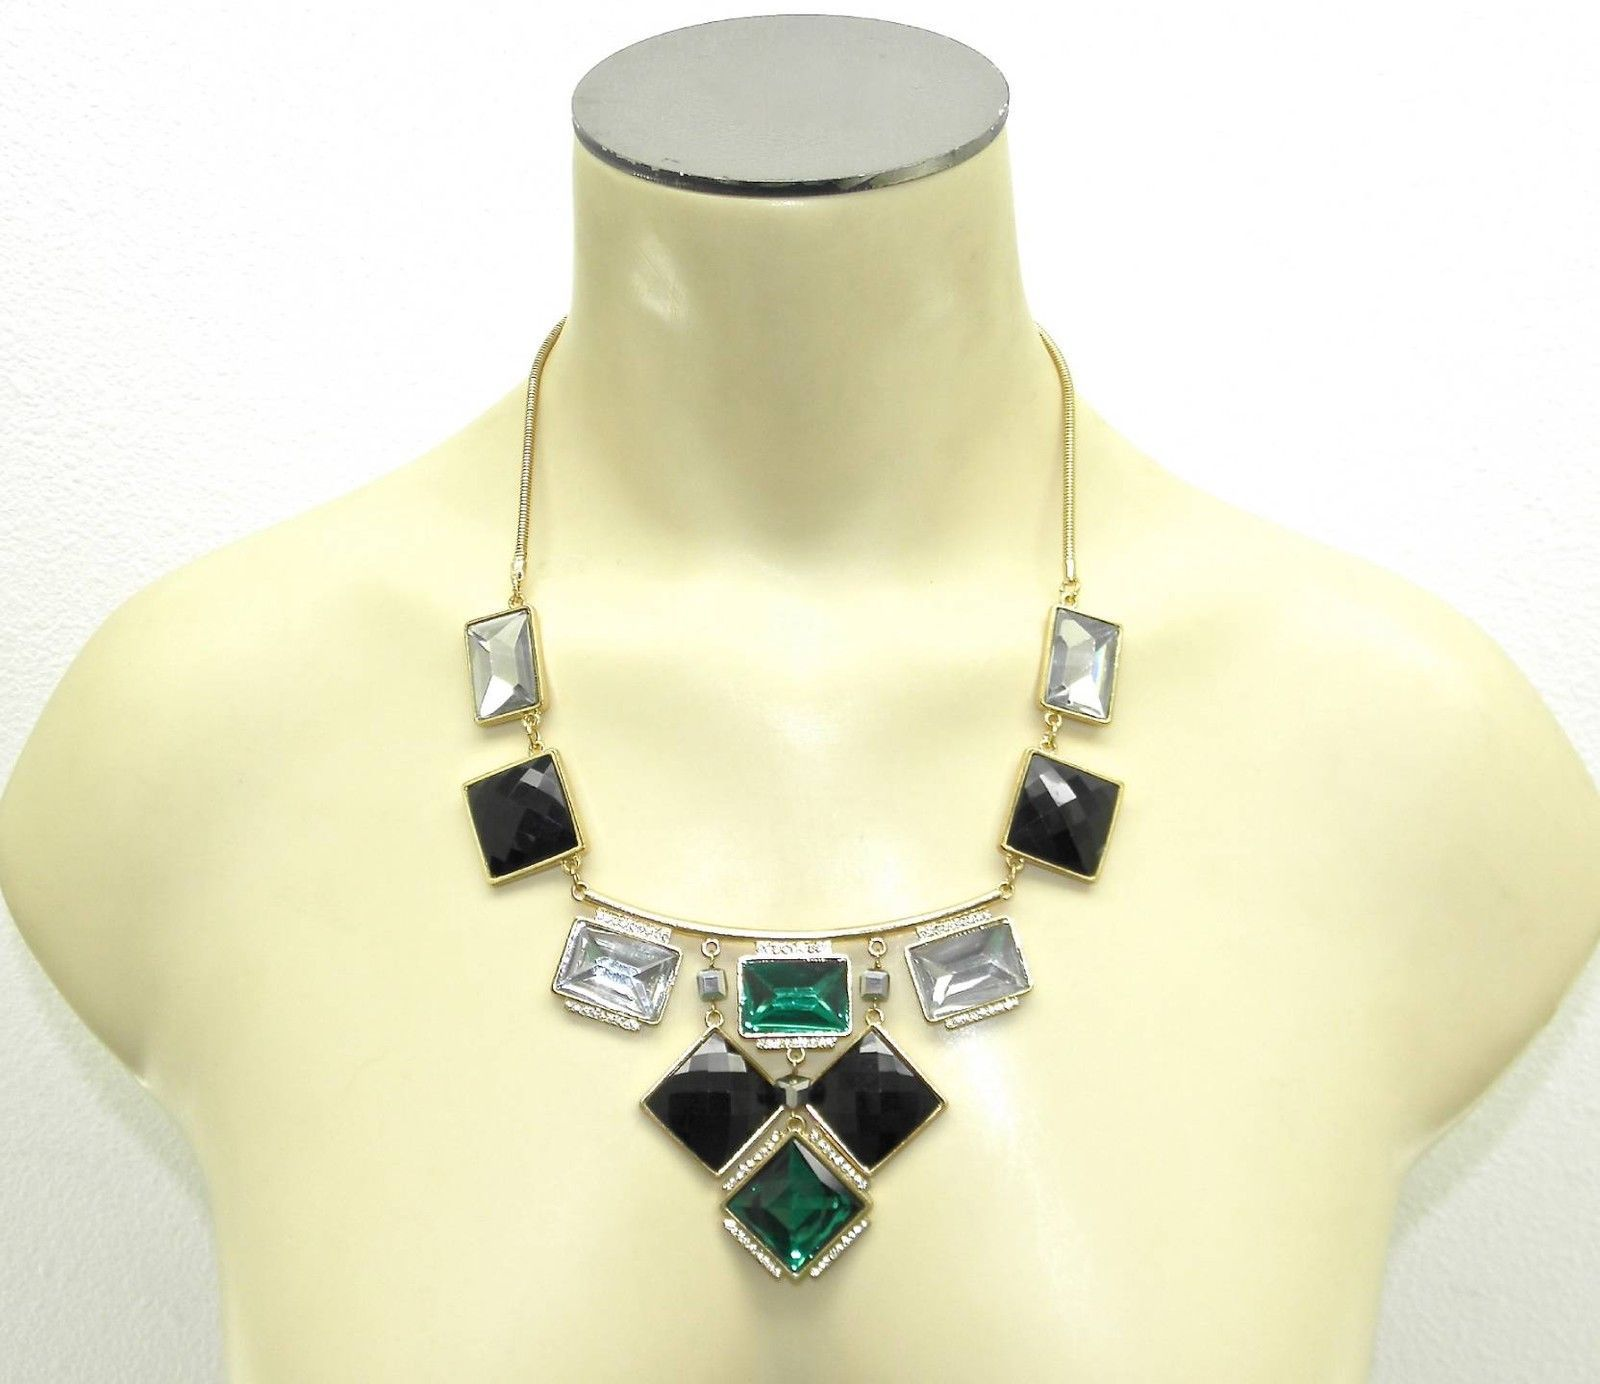 NEW BAR III STATEMENT EMERALD GREEN & CLEAR CRYSTAL GEOMETRIC GOLD NECKLACE 21""